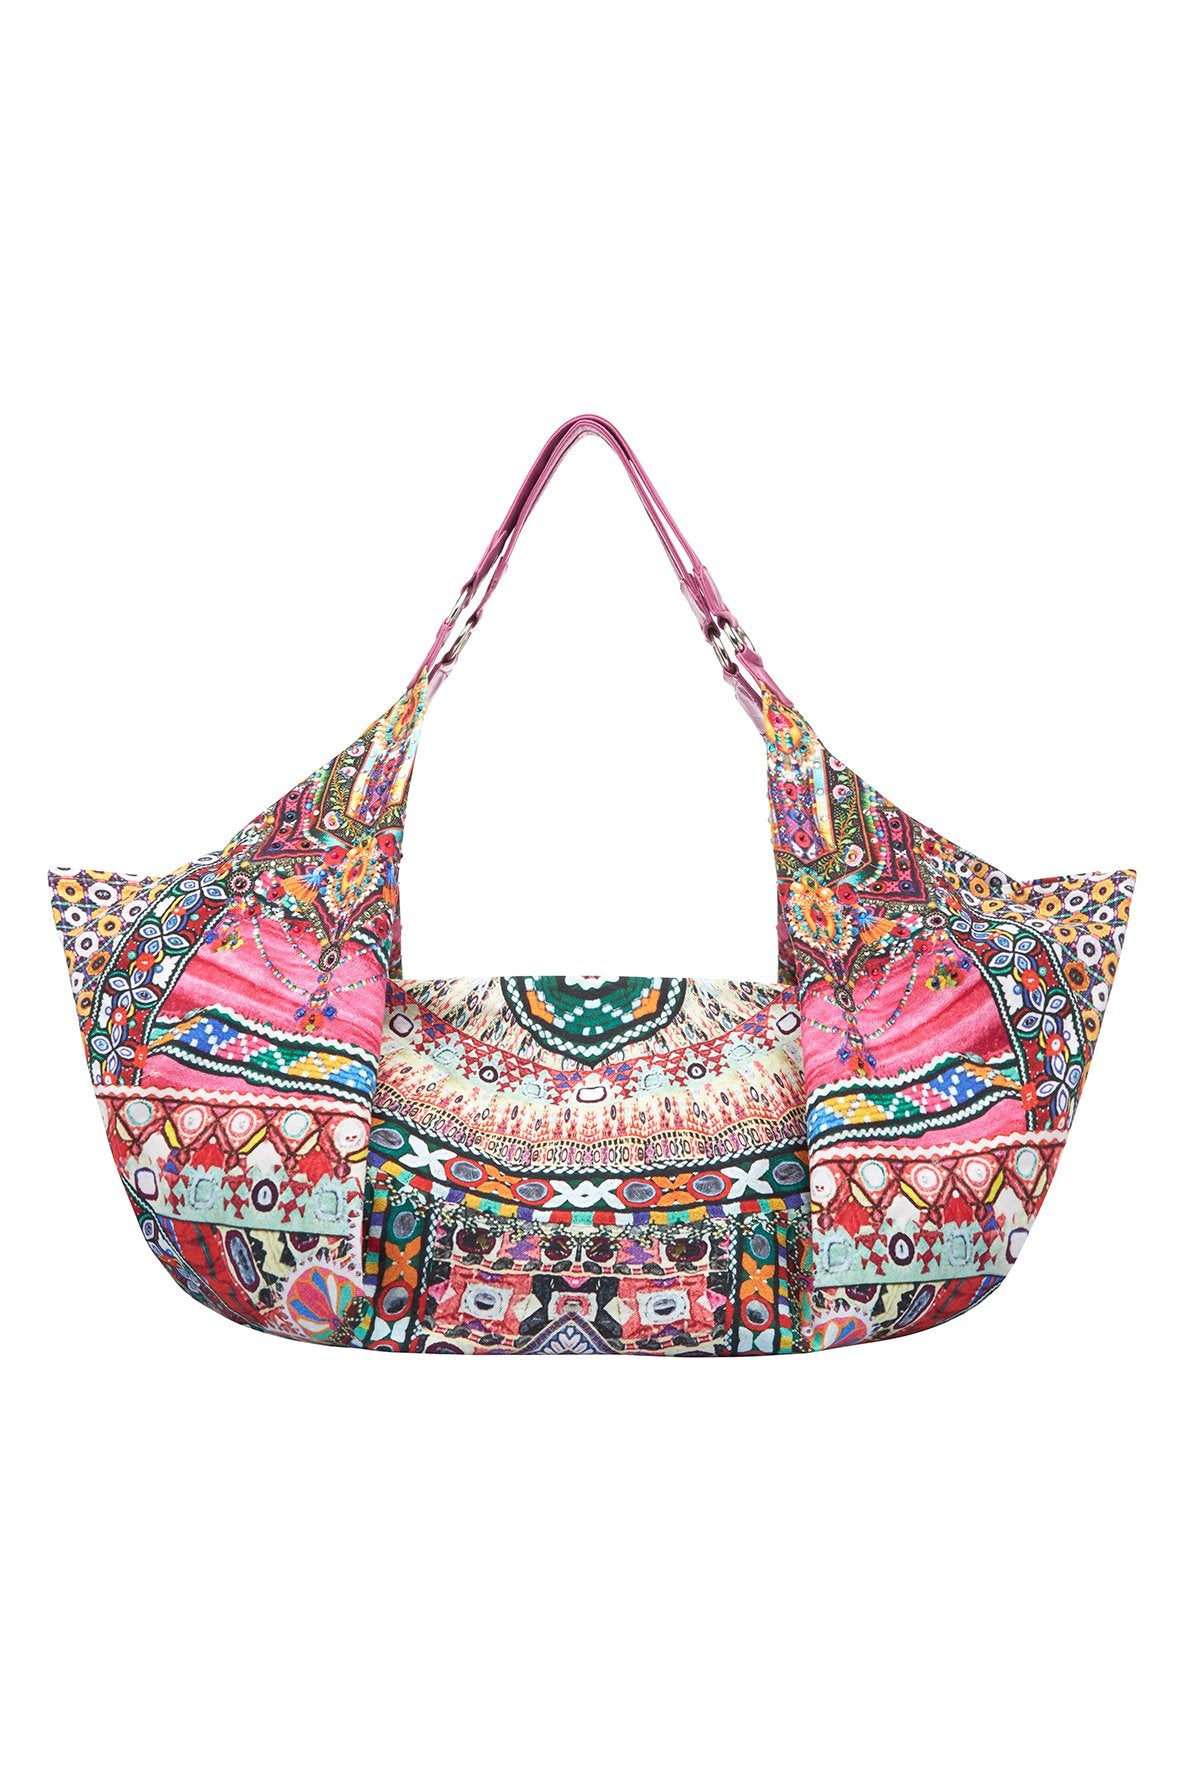 KALBELIA QUEEN SOFT BEACH BAG